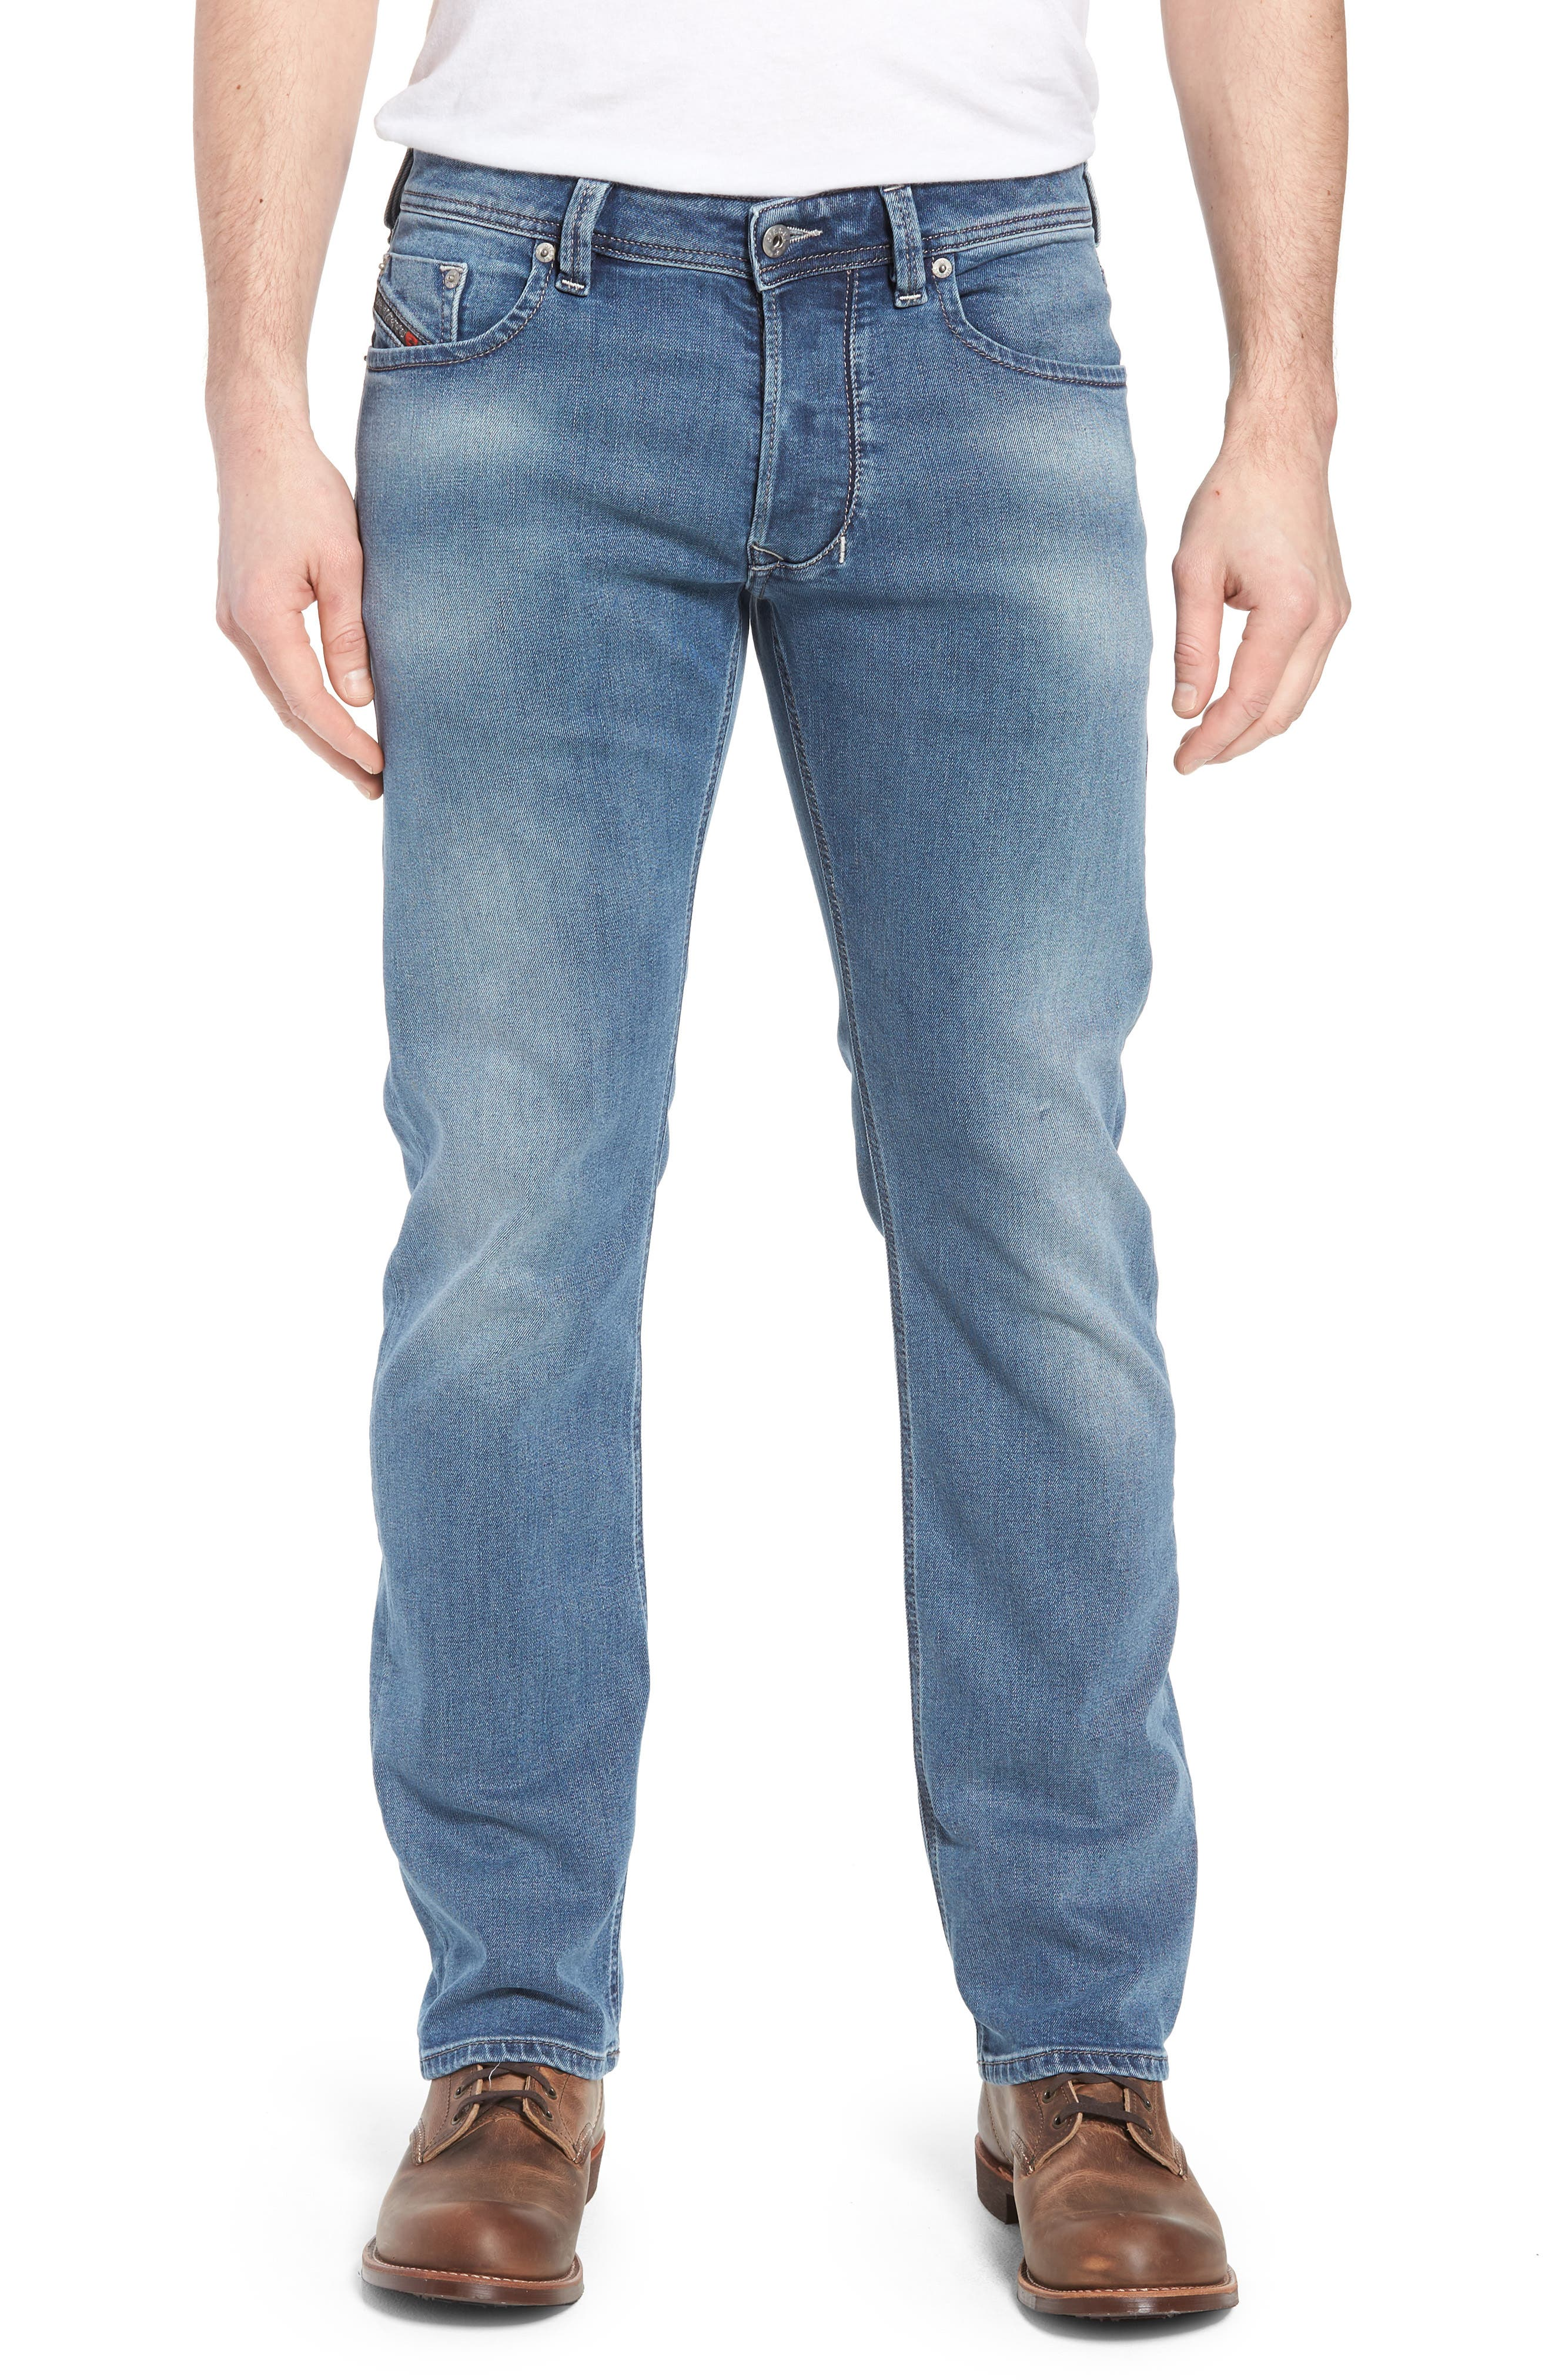 Larkee Relaxed Fit Jeans,                             Main thumbnail 1, color,                             084Rb